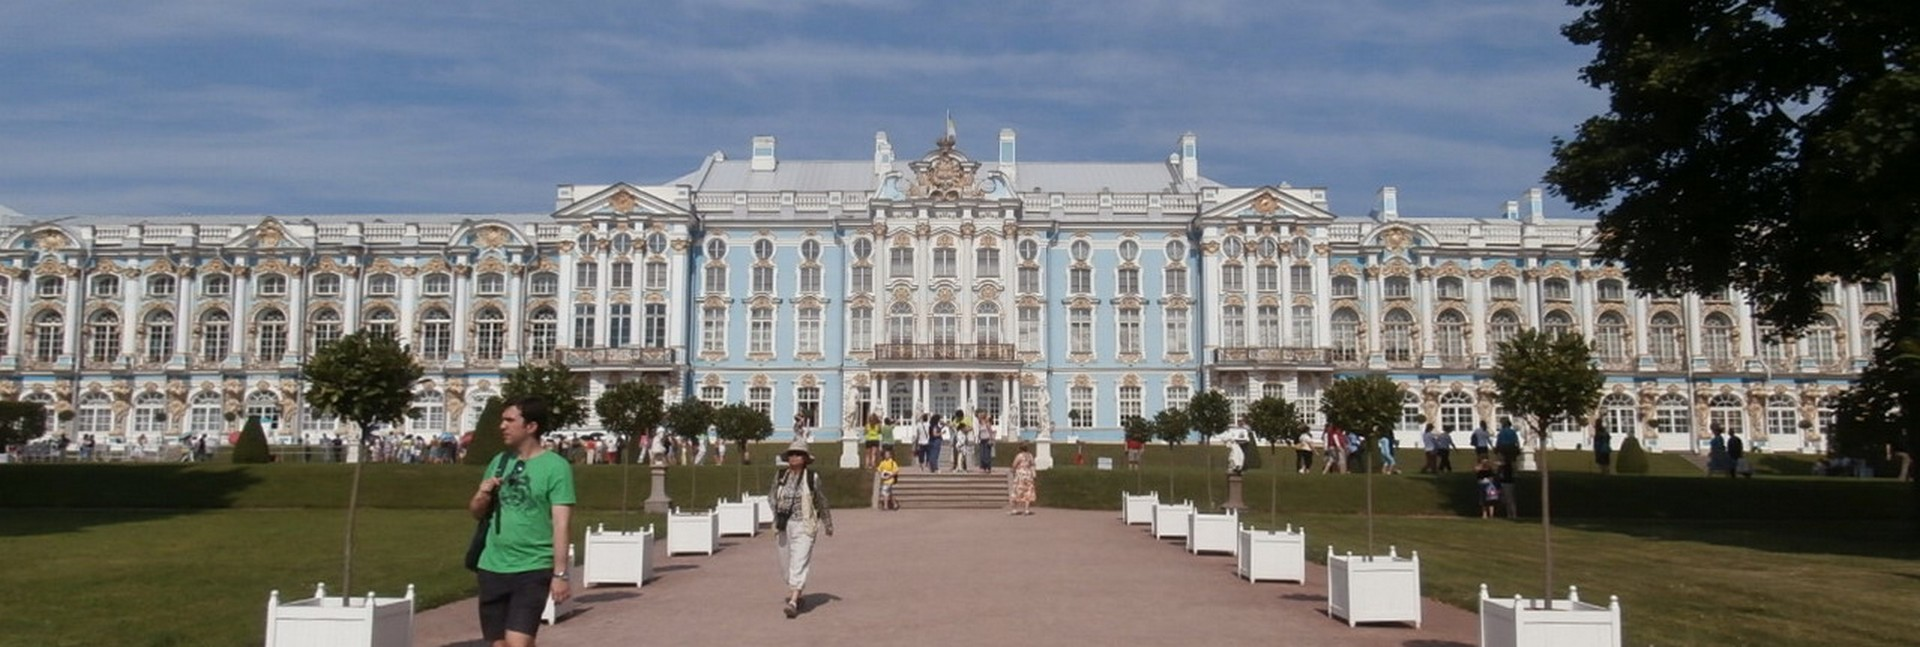 RUSSIA – A TALE OF TWO CITIES – PART 1: St. Petersburg